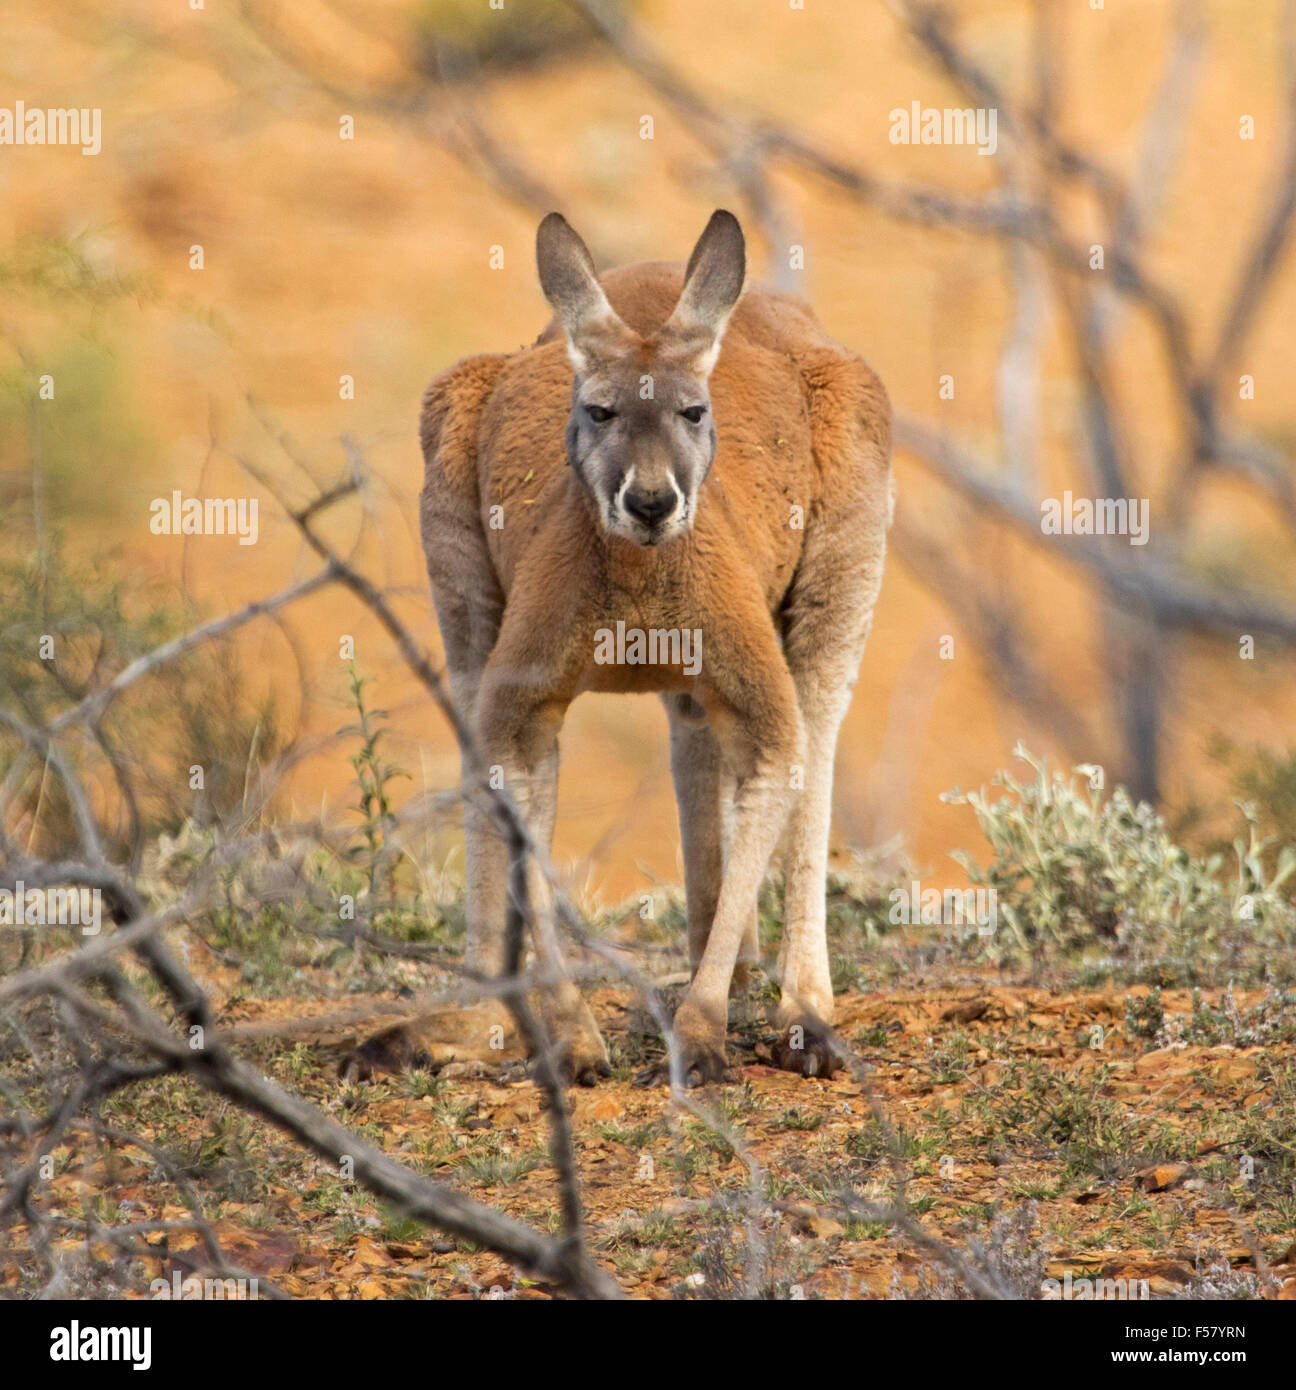 Close-up of male red kangaroo, Macropus rufus, in crouching pose beside low vegetation in red soil of outback Australia - Stock Image